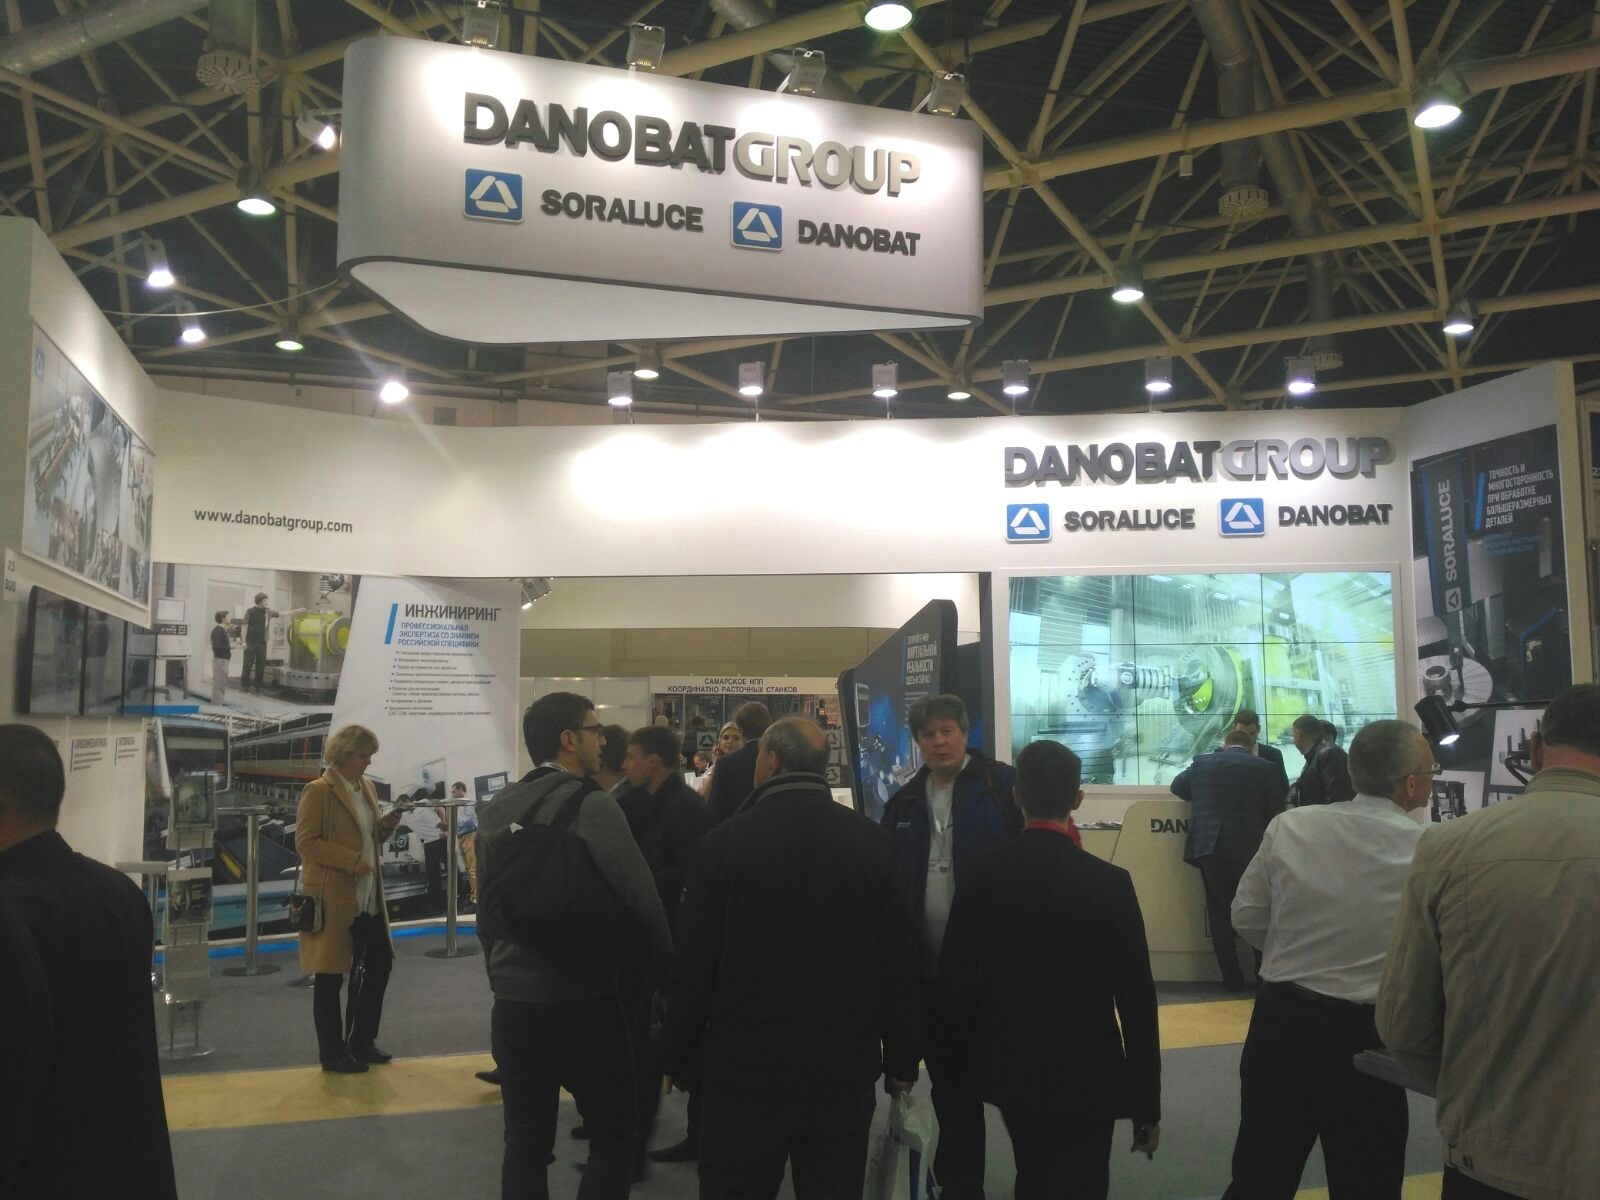 DANOBATGROUP presents the latest developments of DANOBAT and SORALUCE at the METALLOBRABOTKA in Moscow